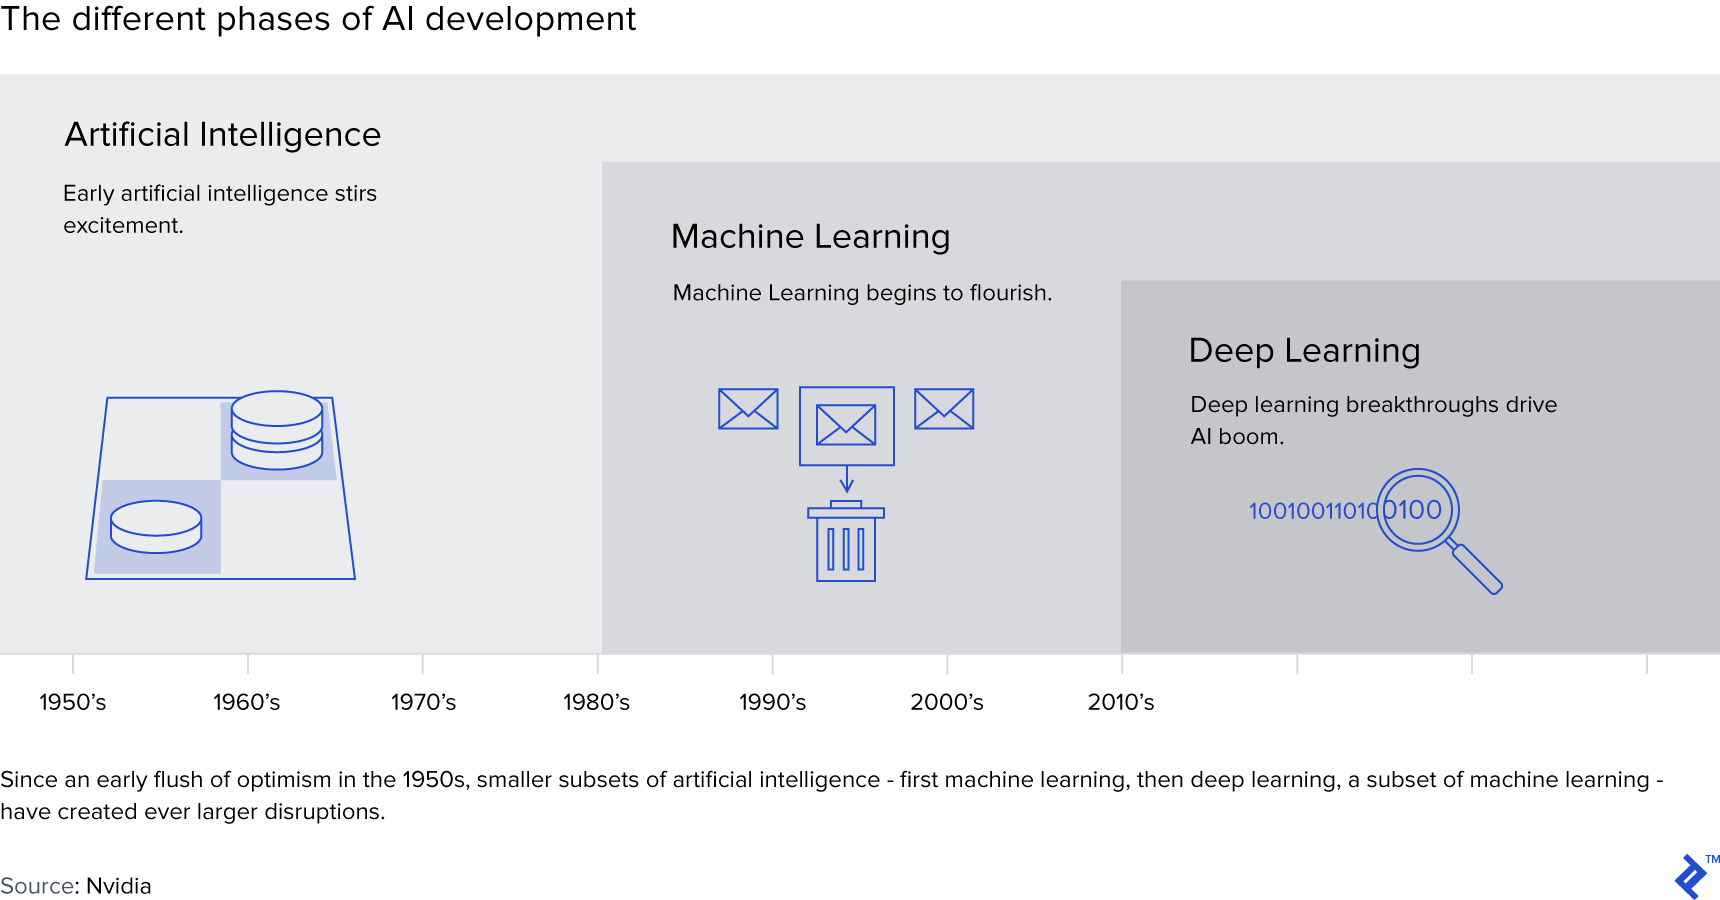 Graphic showing the different phases of AI development.